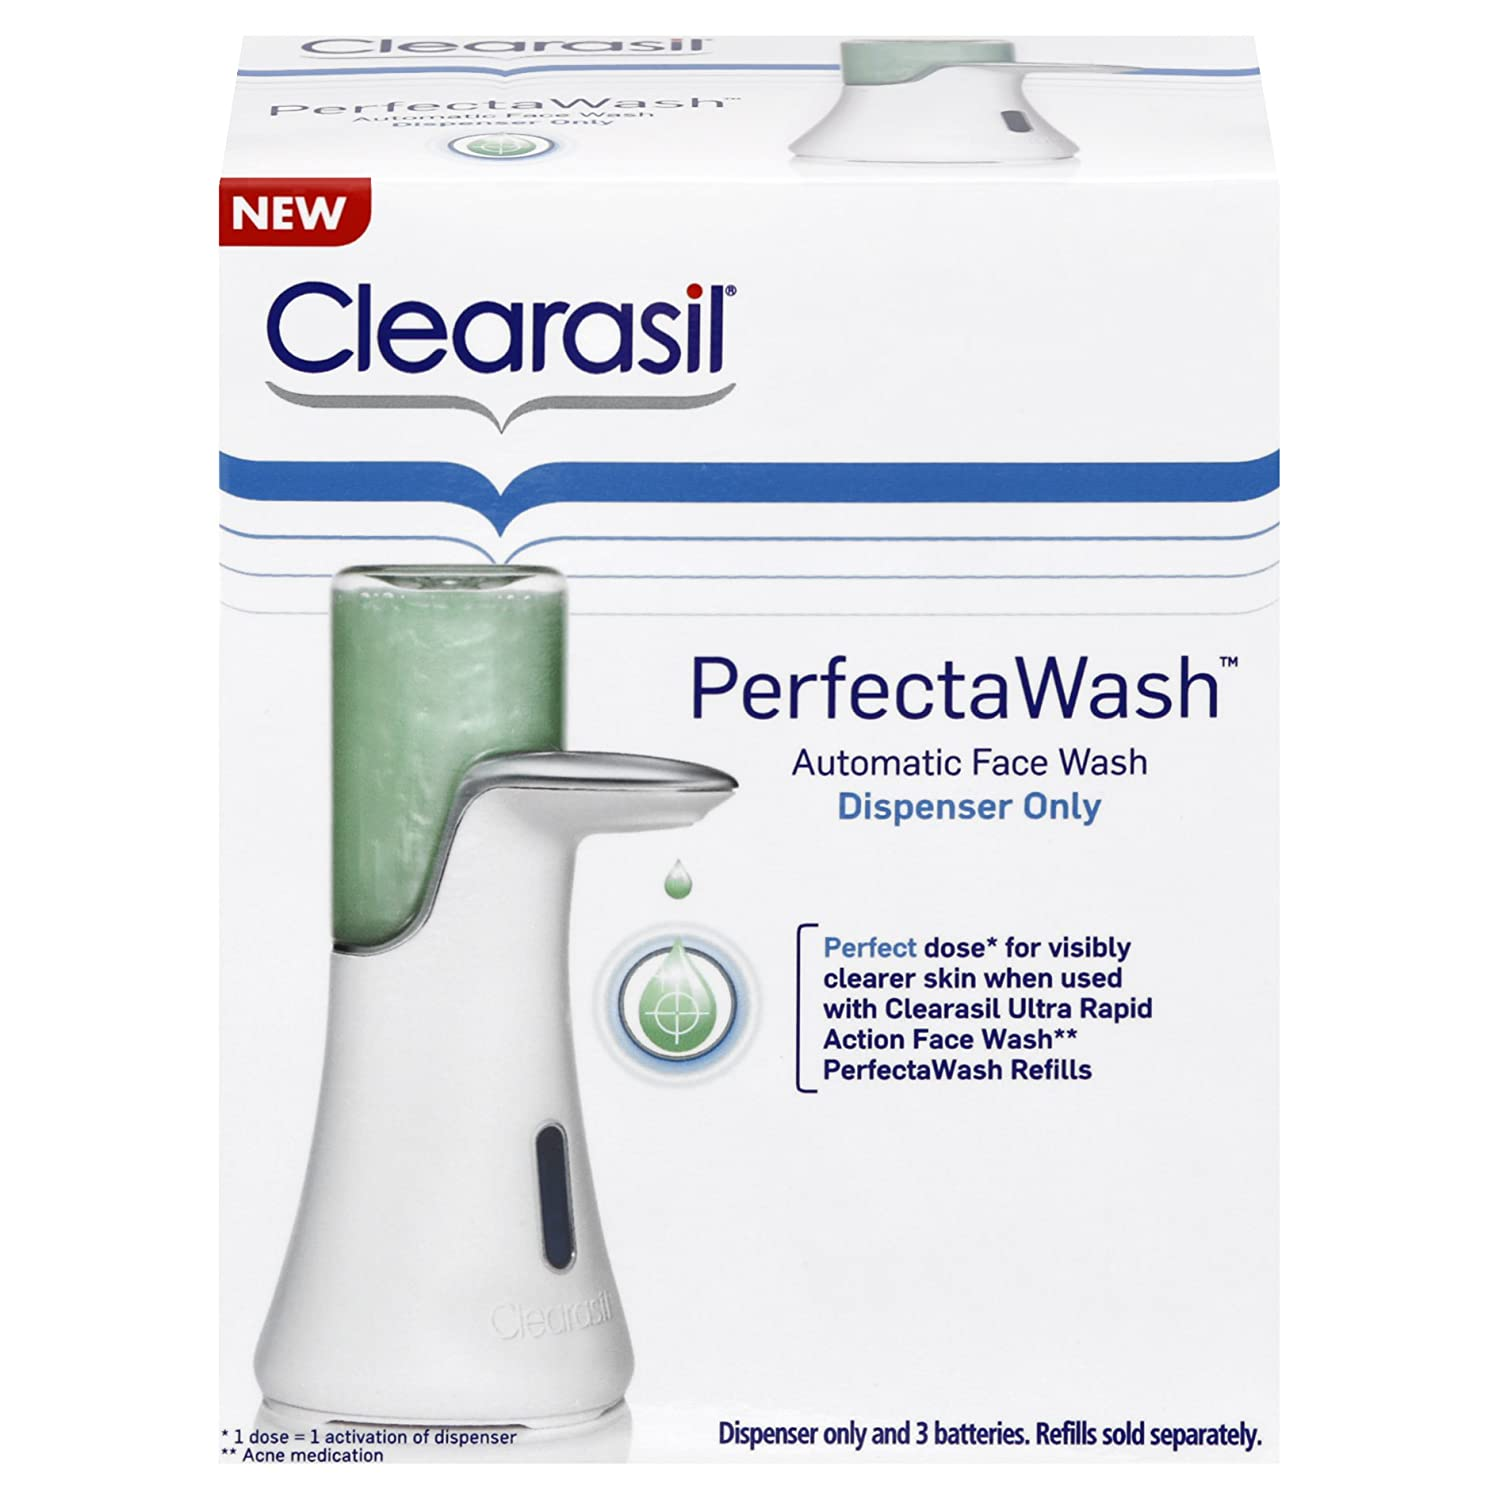 Clearasil Perfectawash Automatic Acne Treatment Face Wash Dispenser and Refills, 1 Count Gold Adult Unisex Skin Sui